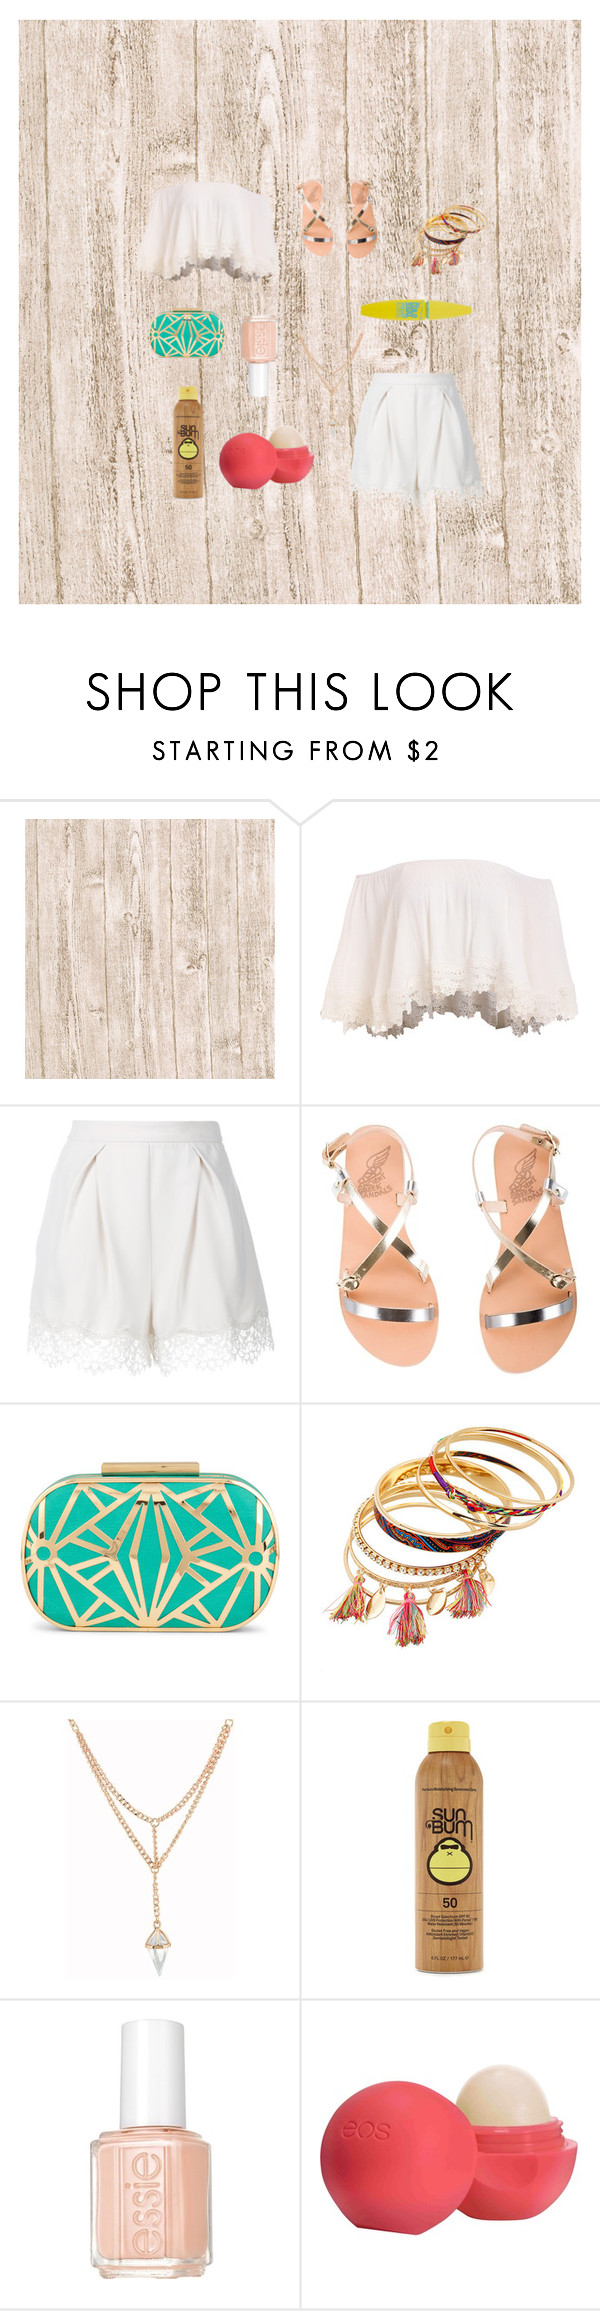 """Summer outfit"" by jadaramseyy on Polyvore featuring Zimmermann, Ancient Greek Sandals, ALDO, Forever 21, Essie, Eos and Maybelline"